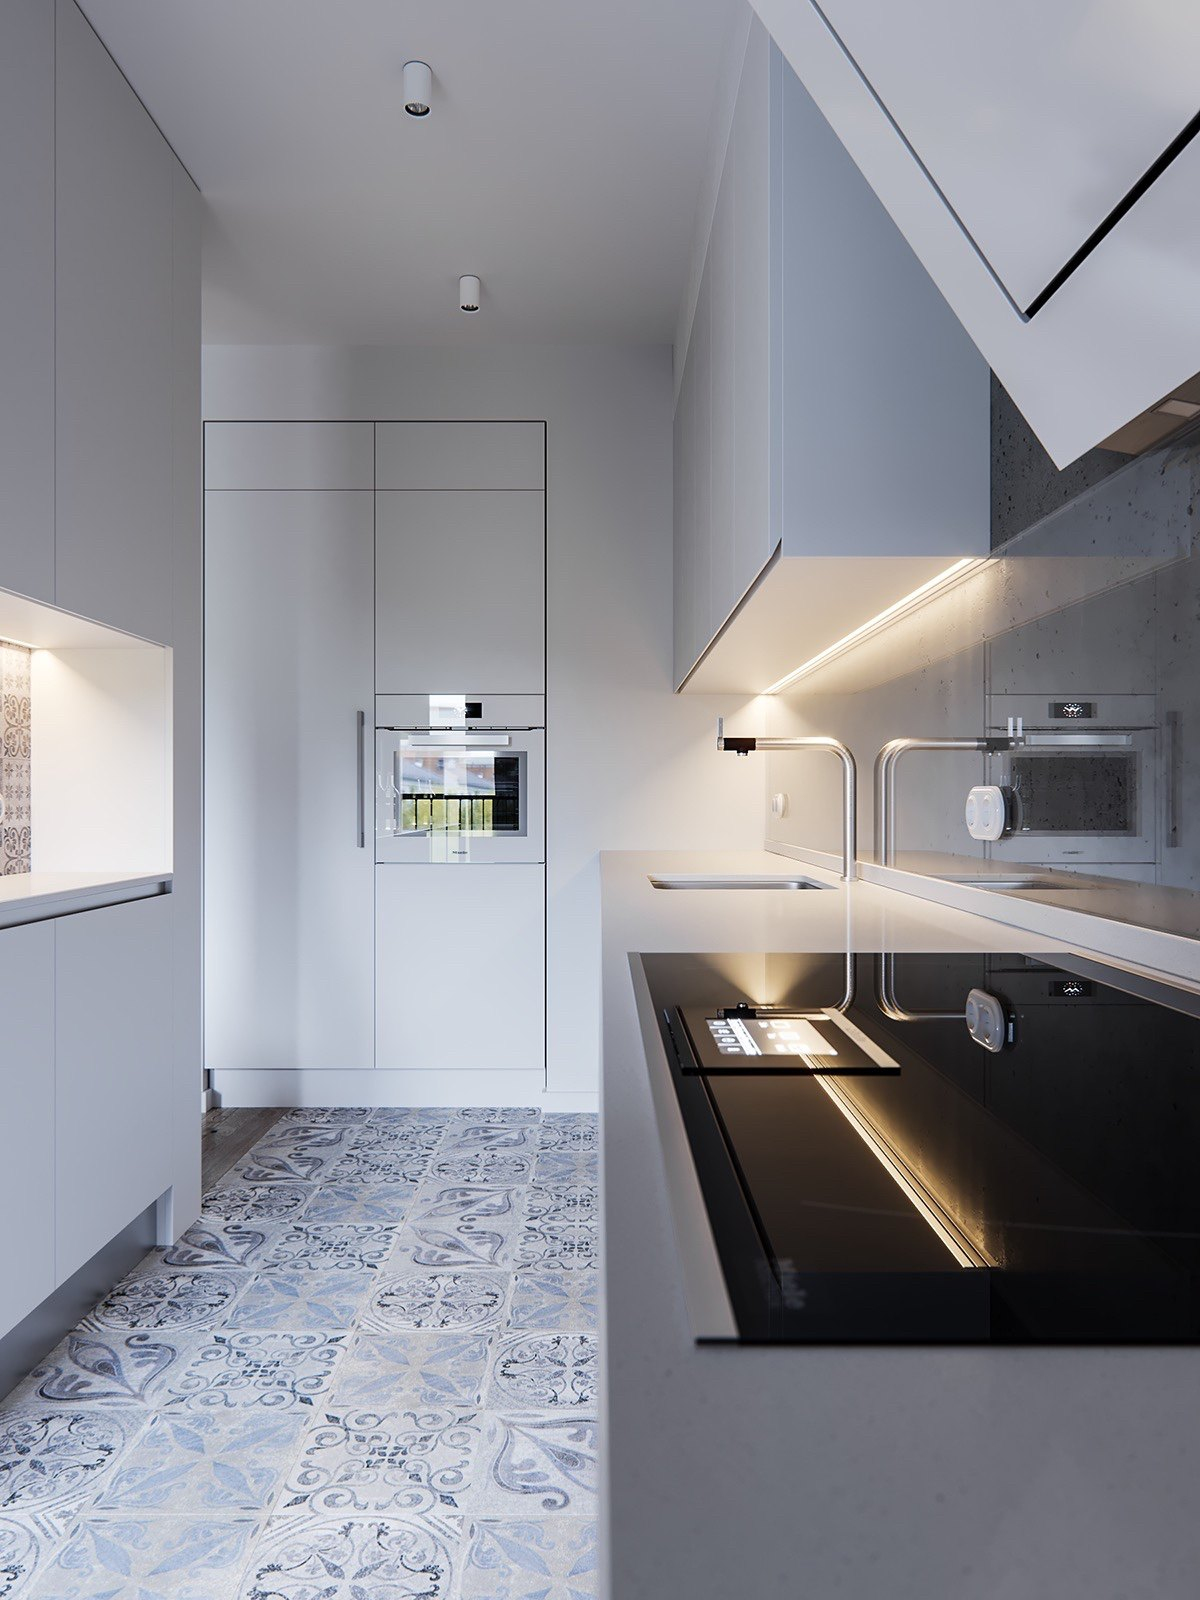 Patterned Tiles In Minimalist Kitchen - A pair of stylish apartments that put their extra rooms to good use